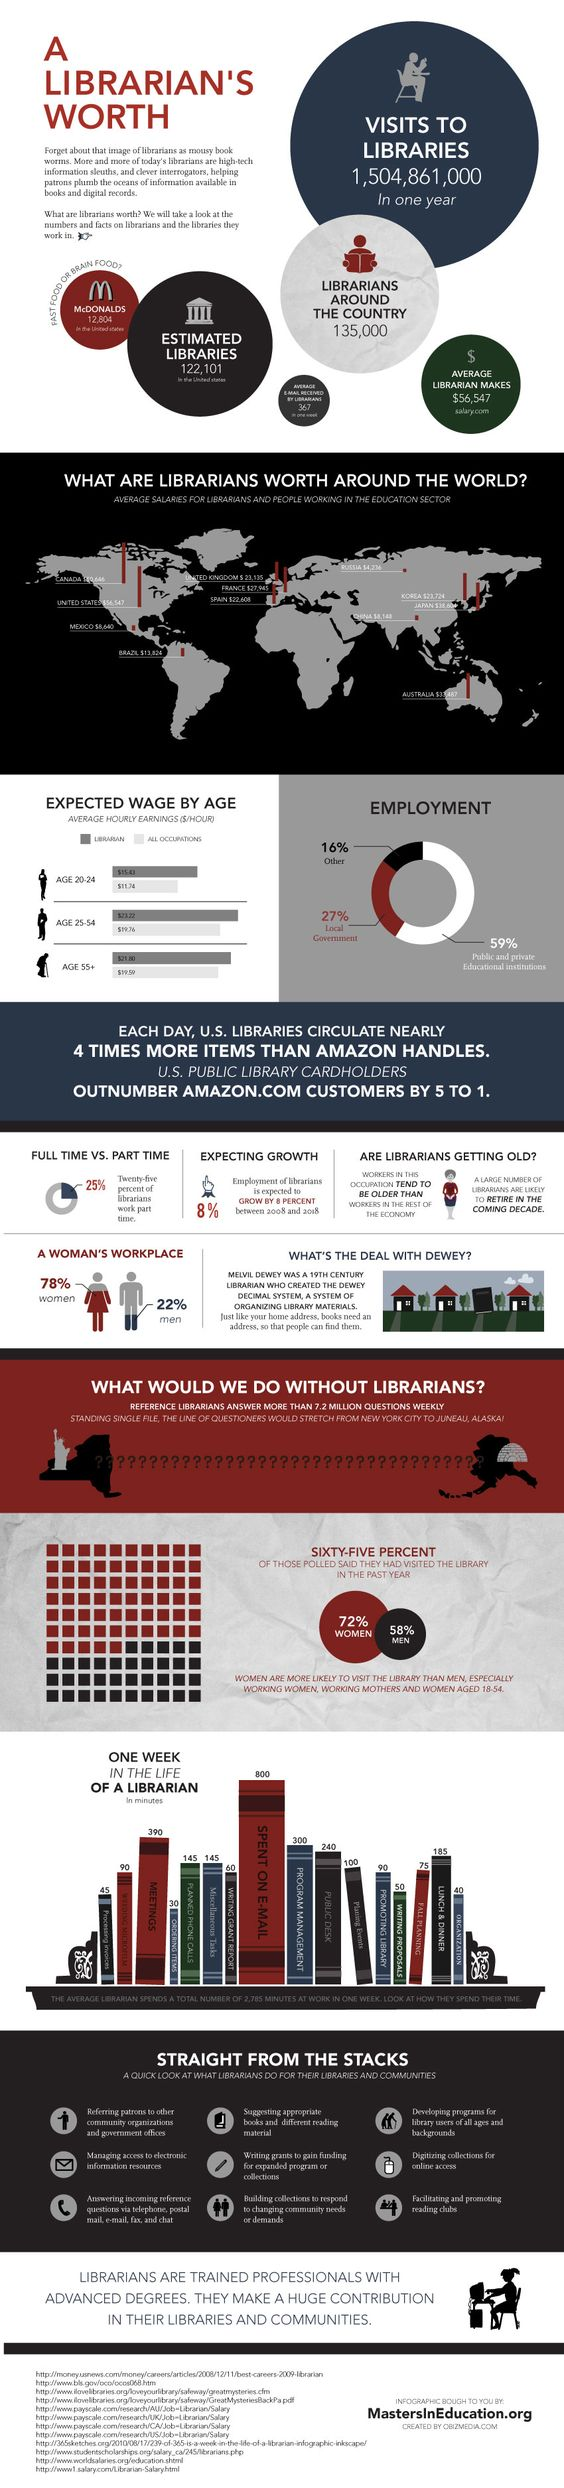 The Value of Librarians